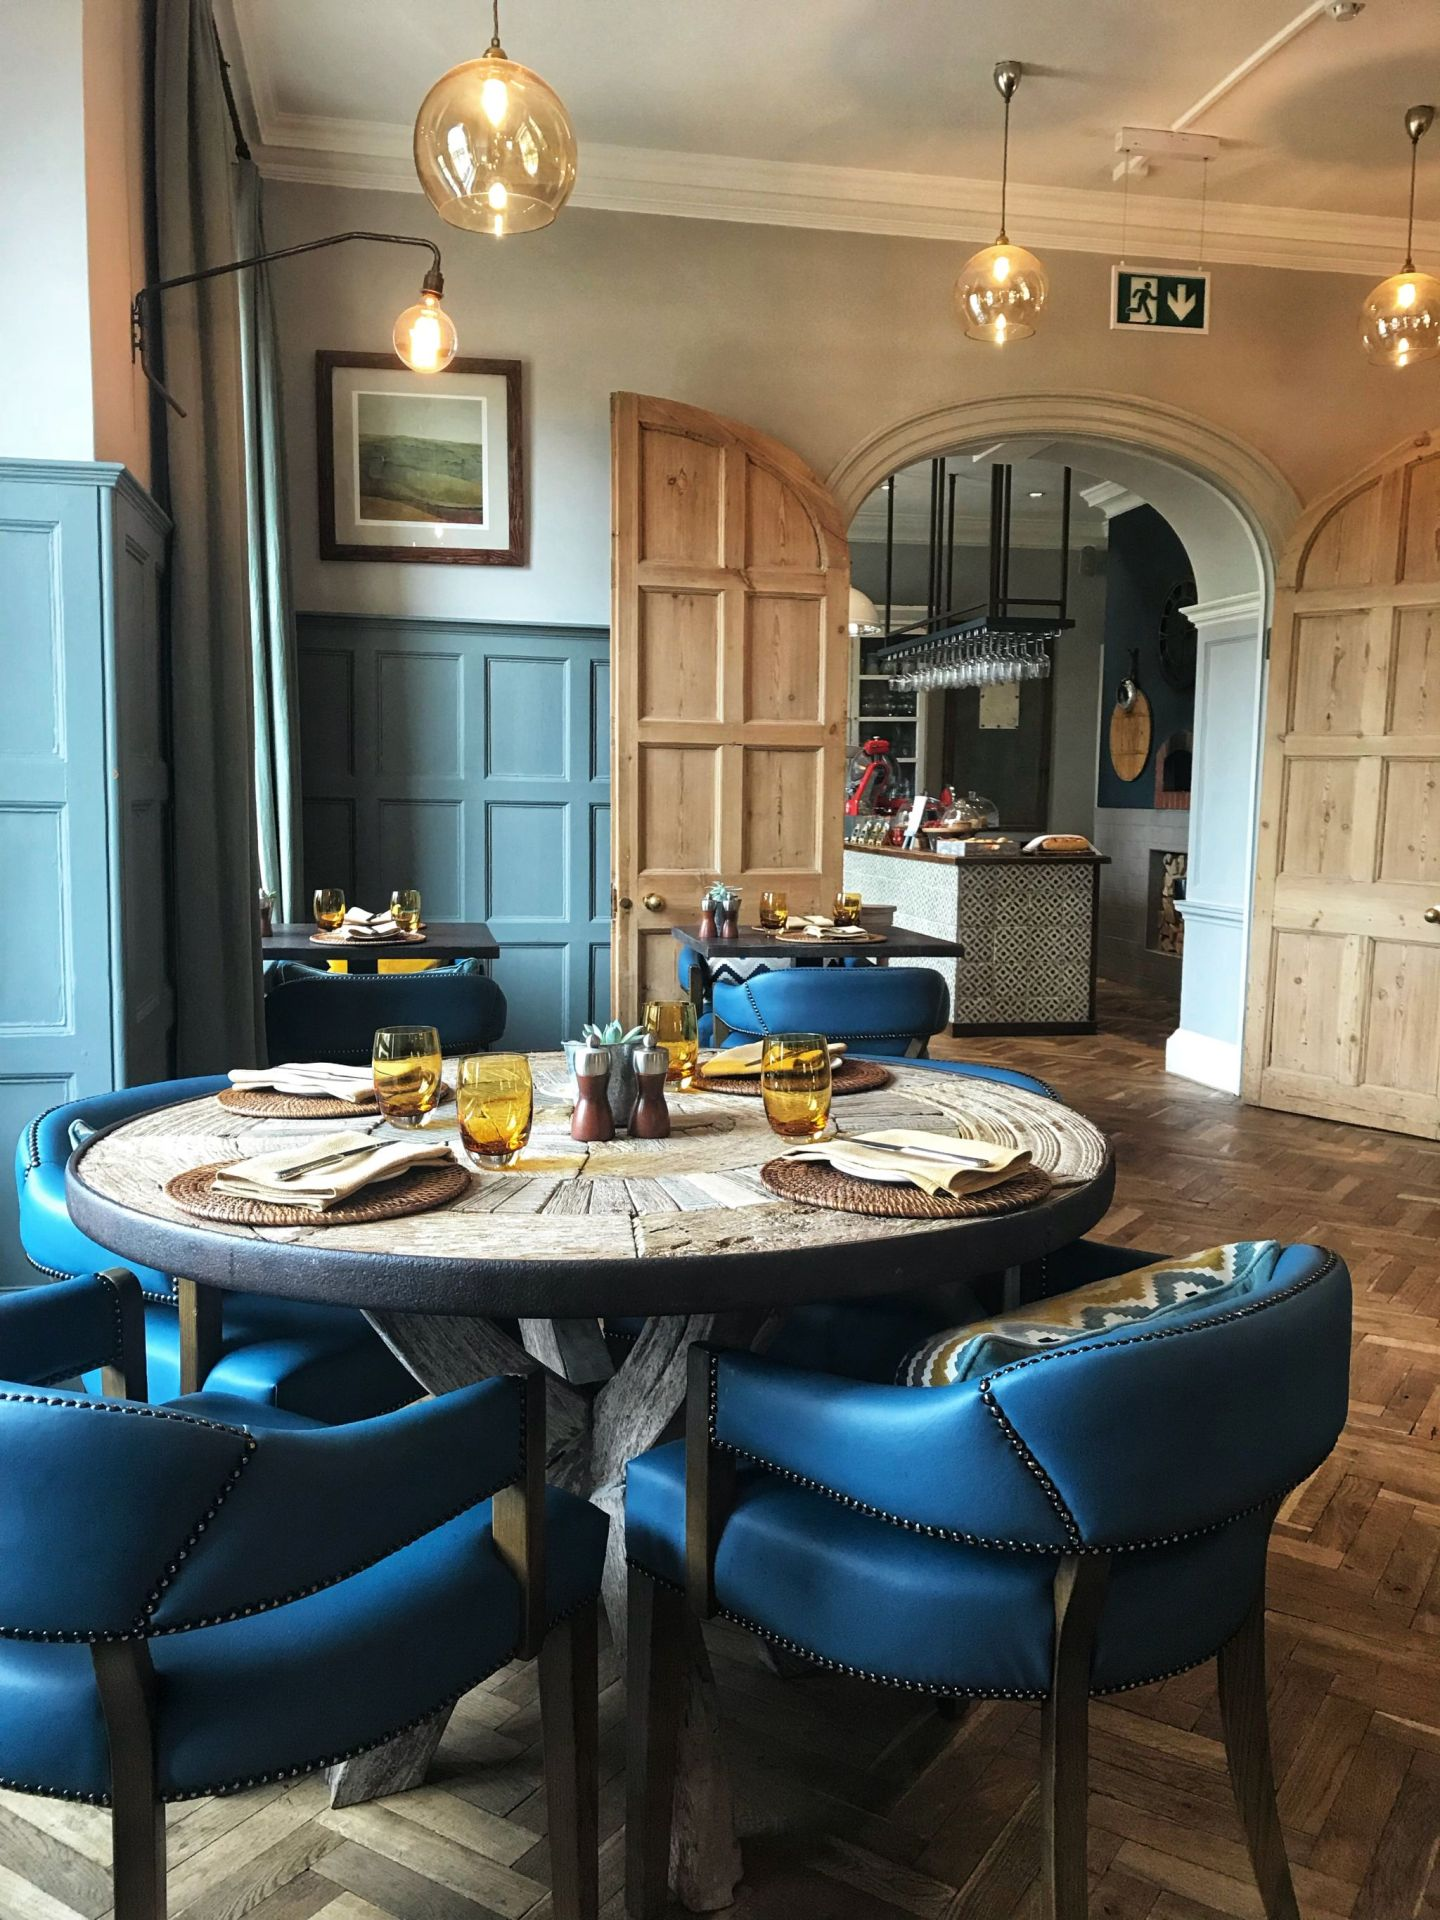 Dining at The Painswick Restaurant Cotswolds